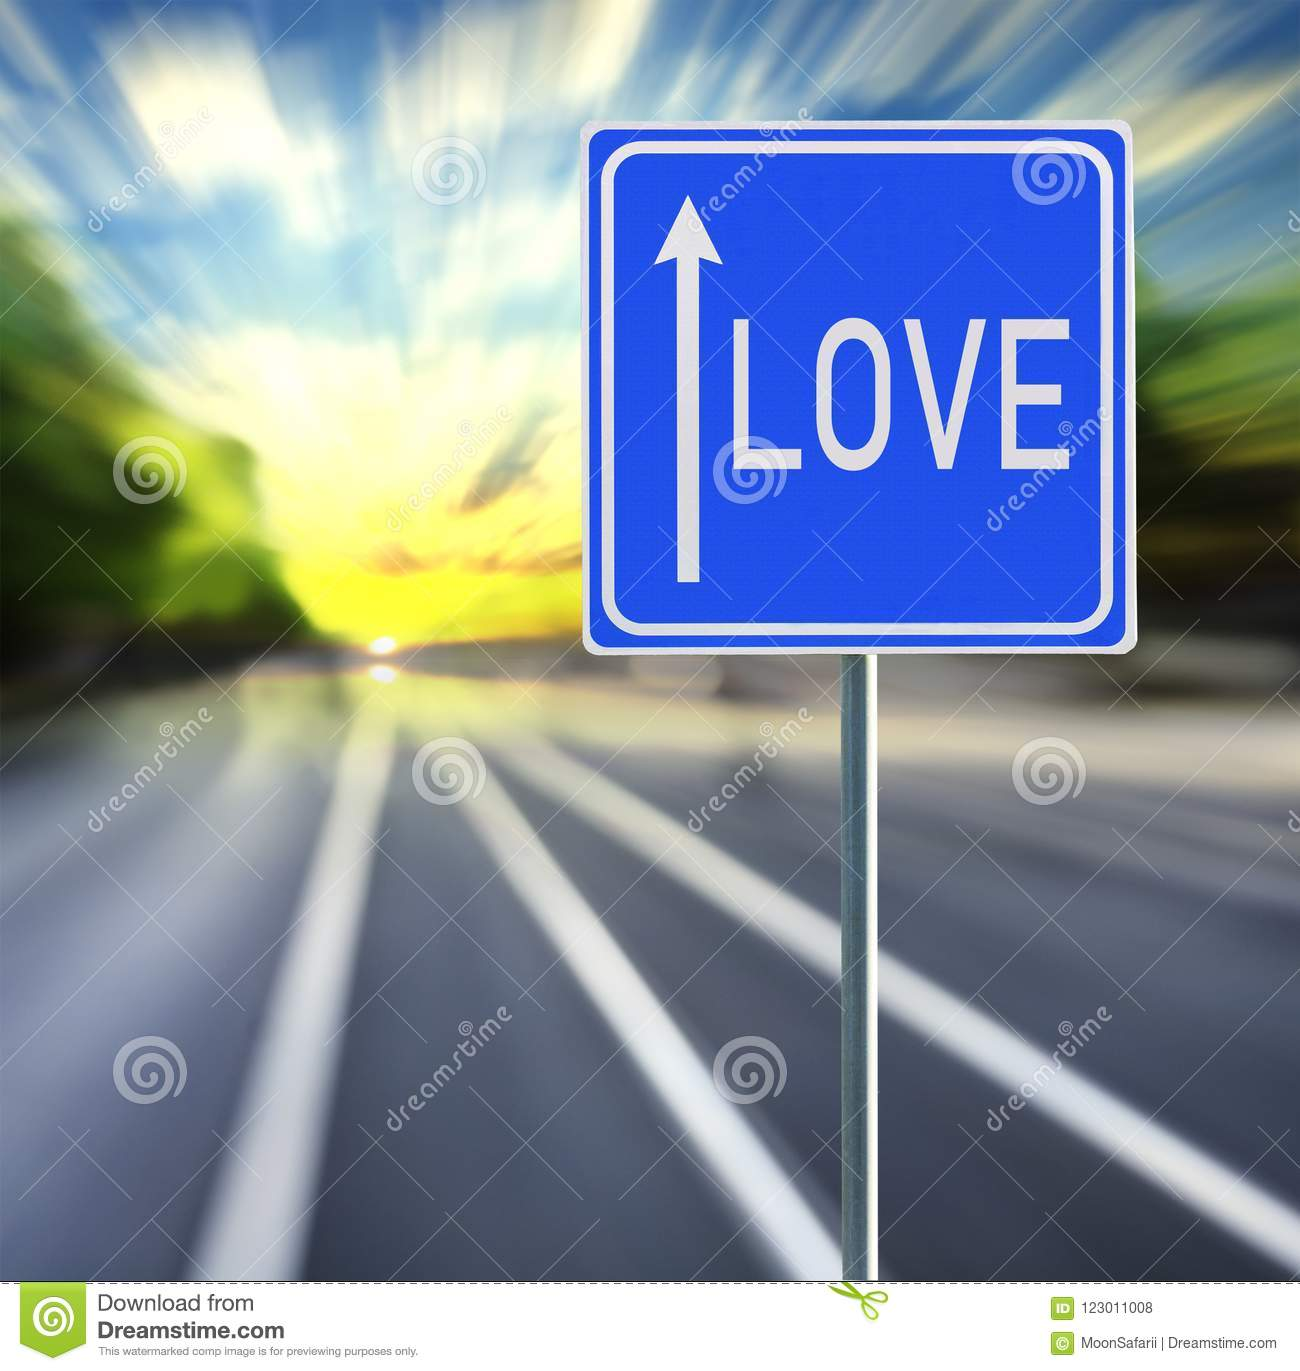 f4ccbd3a6f38 Love Road Sign On A Speedy Background With Sunset. Stock Photo ...